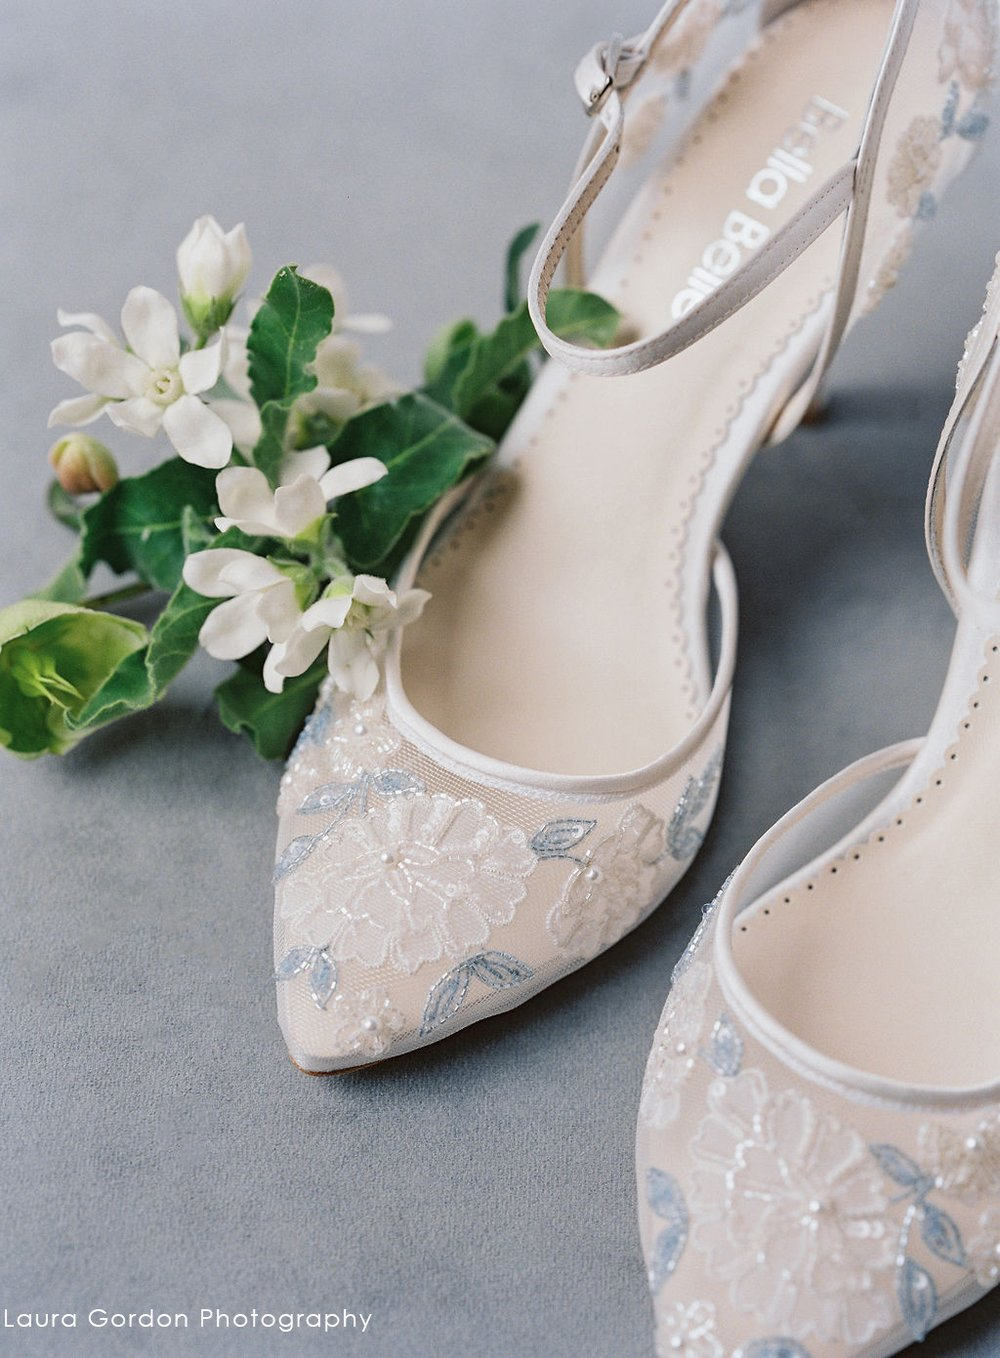 Baby Blue Floral Lace Ivory Wedding Heel Wedding Shoes Heels Bridal Shoes Low Heel Wedding Shoes Low Heel